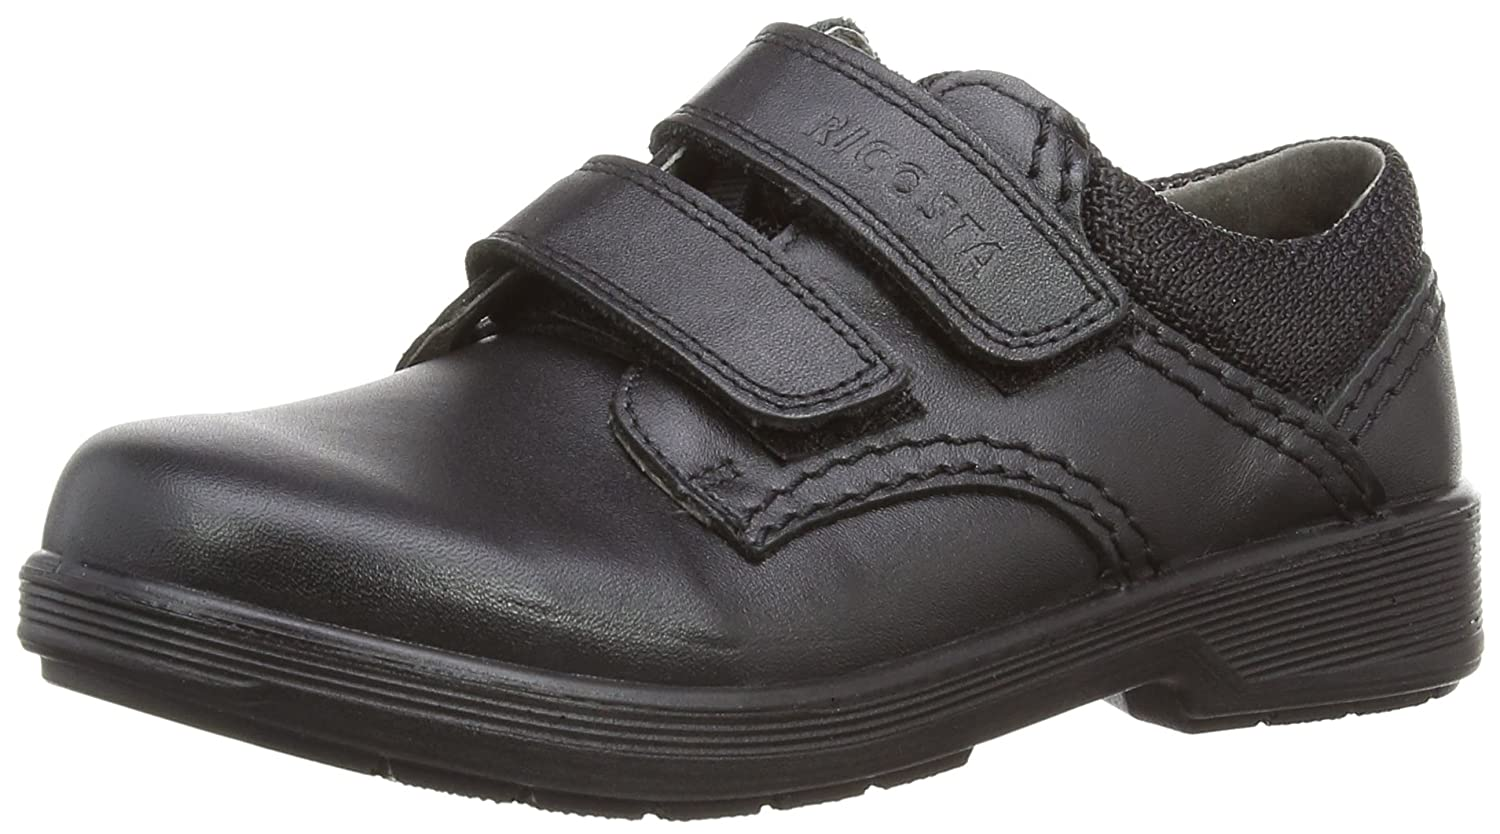 Ricosta Brown Leather School Shoes Various Sizes